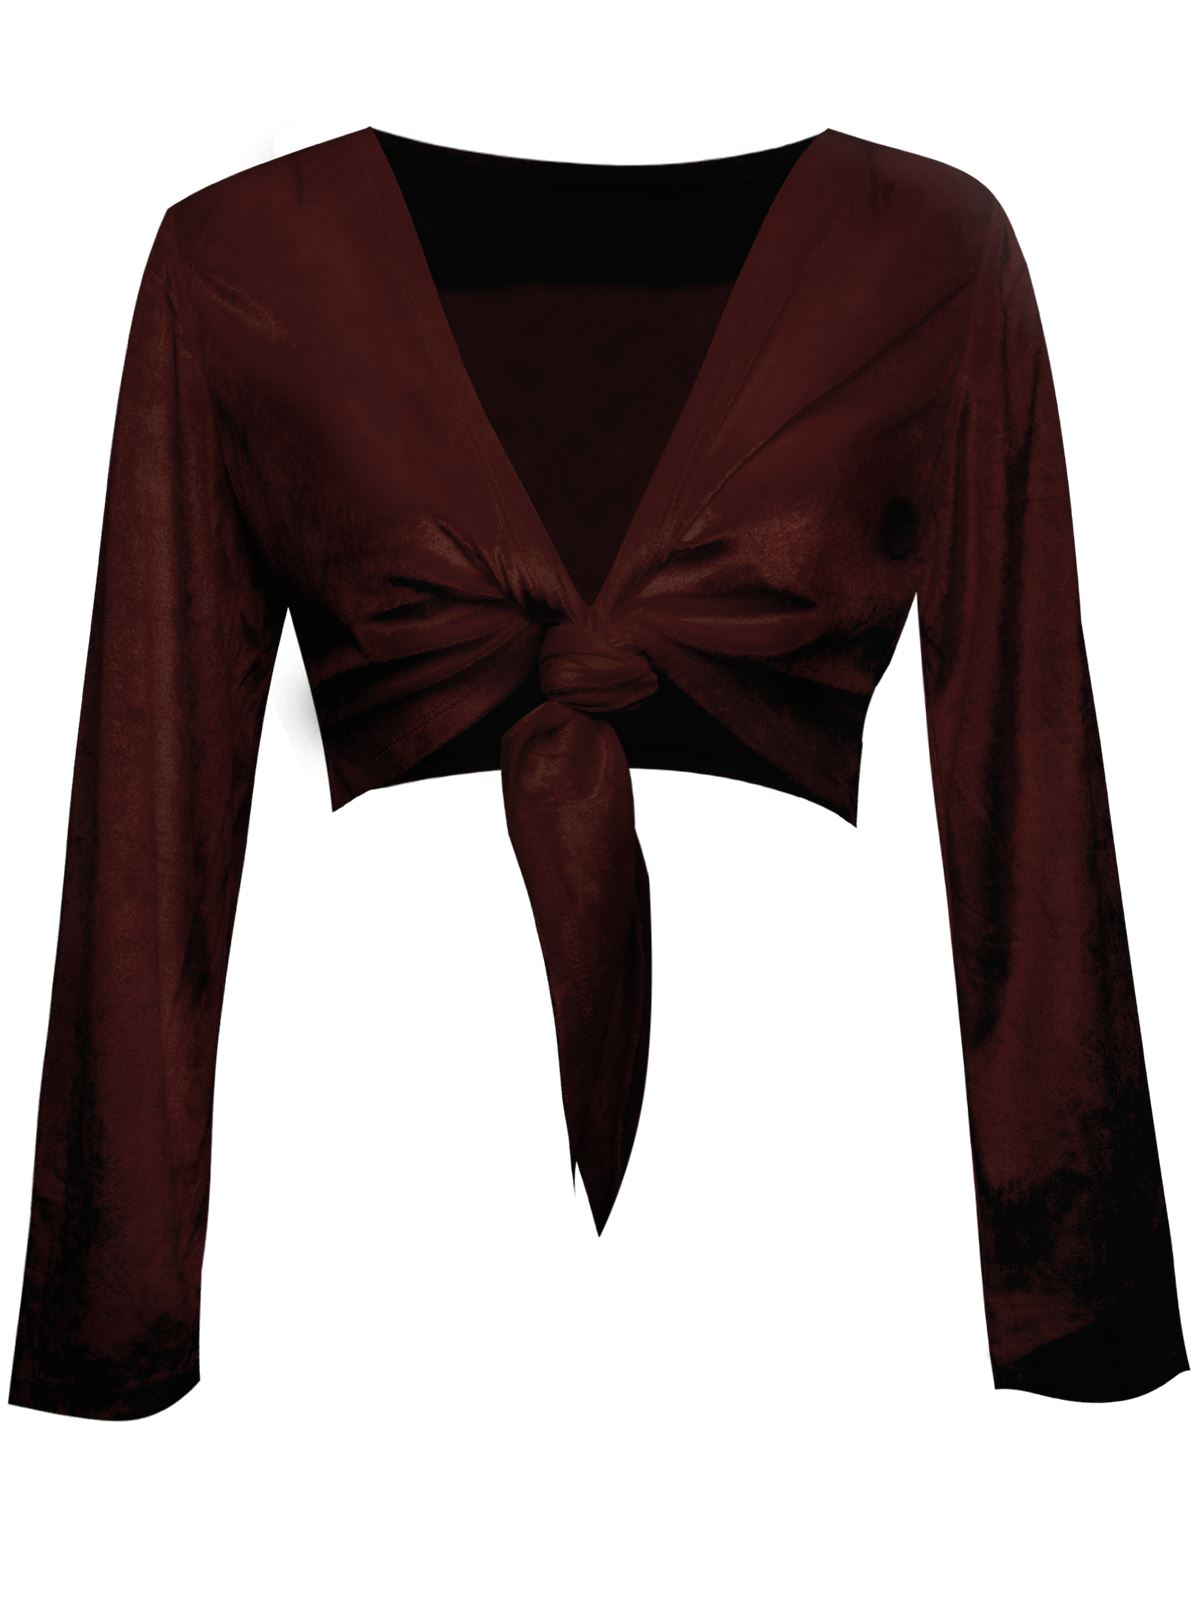 New-Womens-Ladies-Long-Sleeve-Tie-Up-Crop-Bolero-Shrug-Velour-Wrap-Cardigan-Top